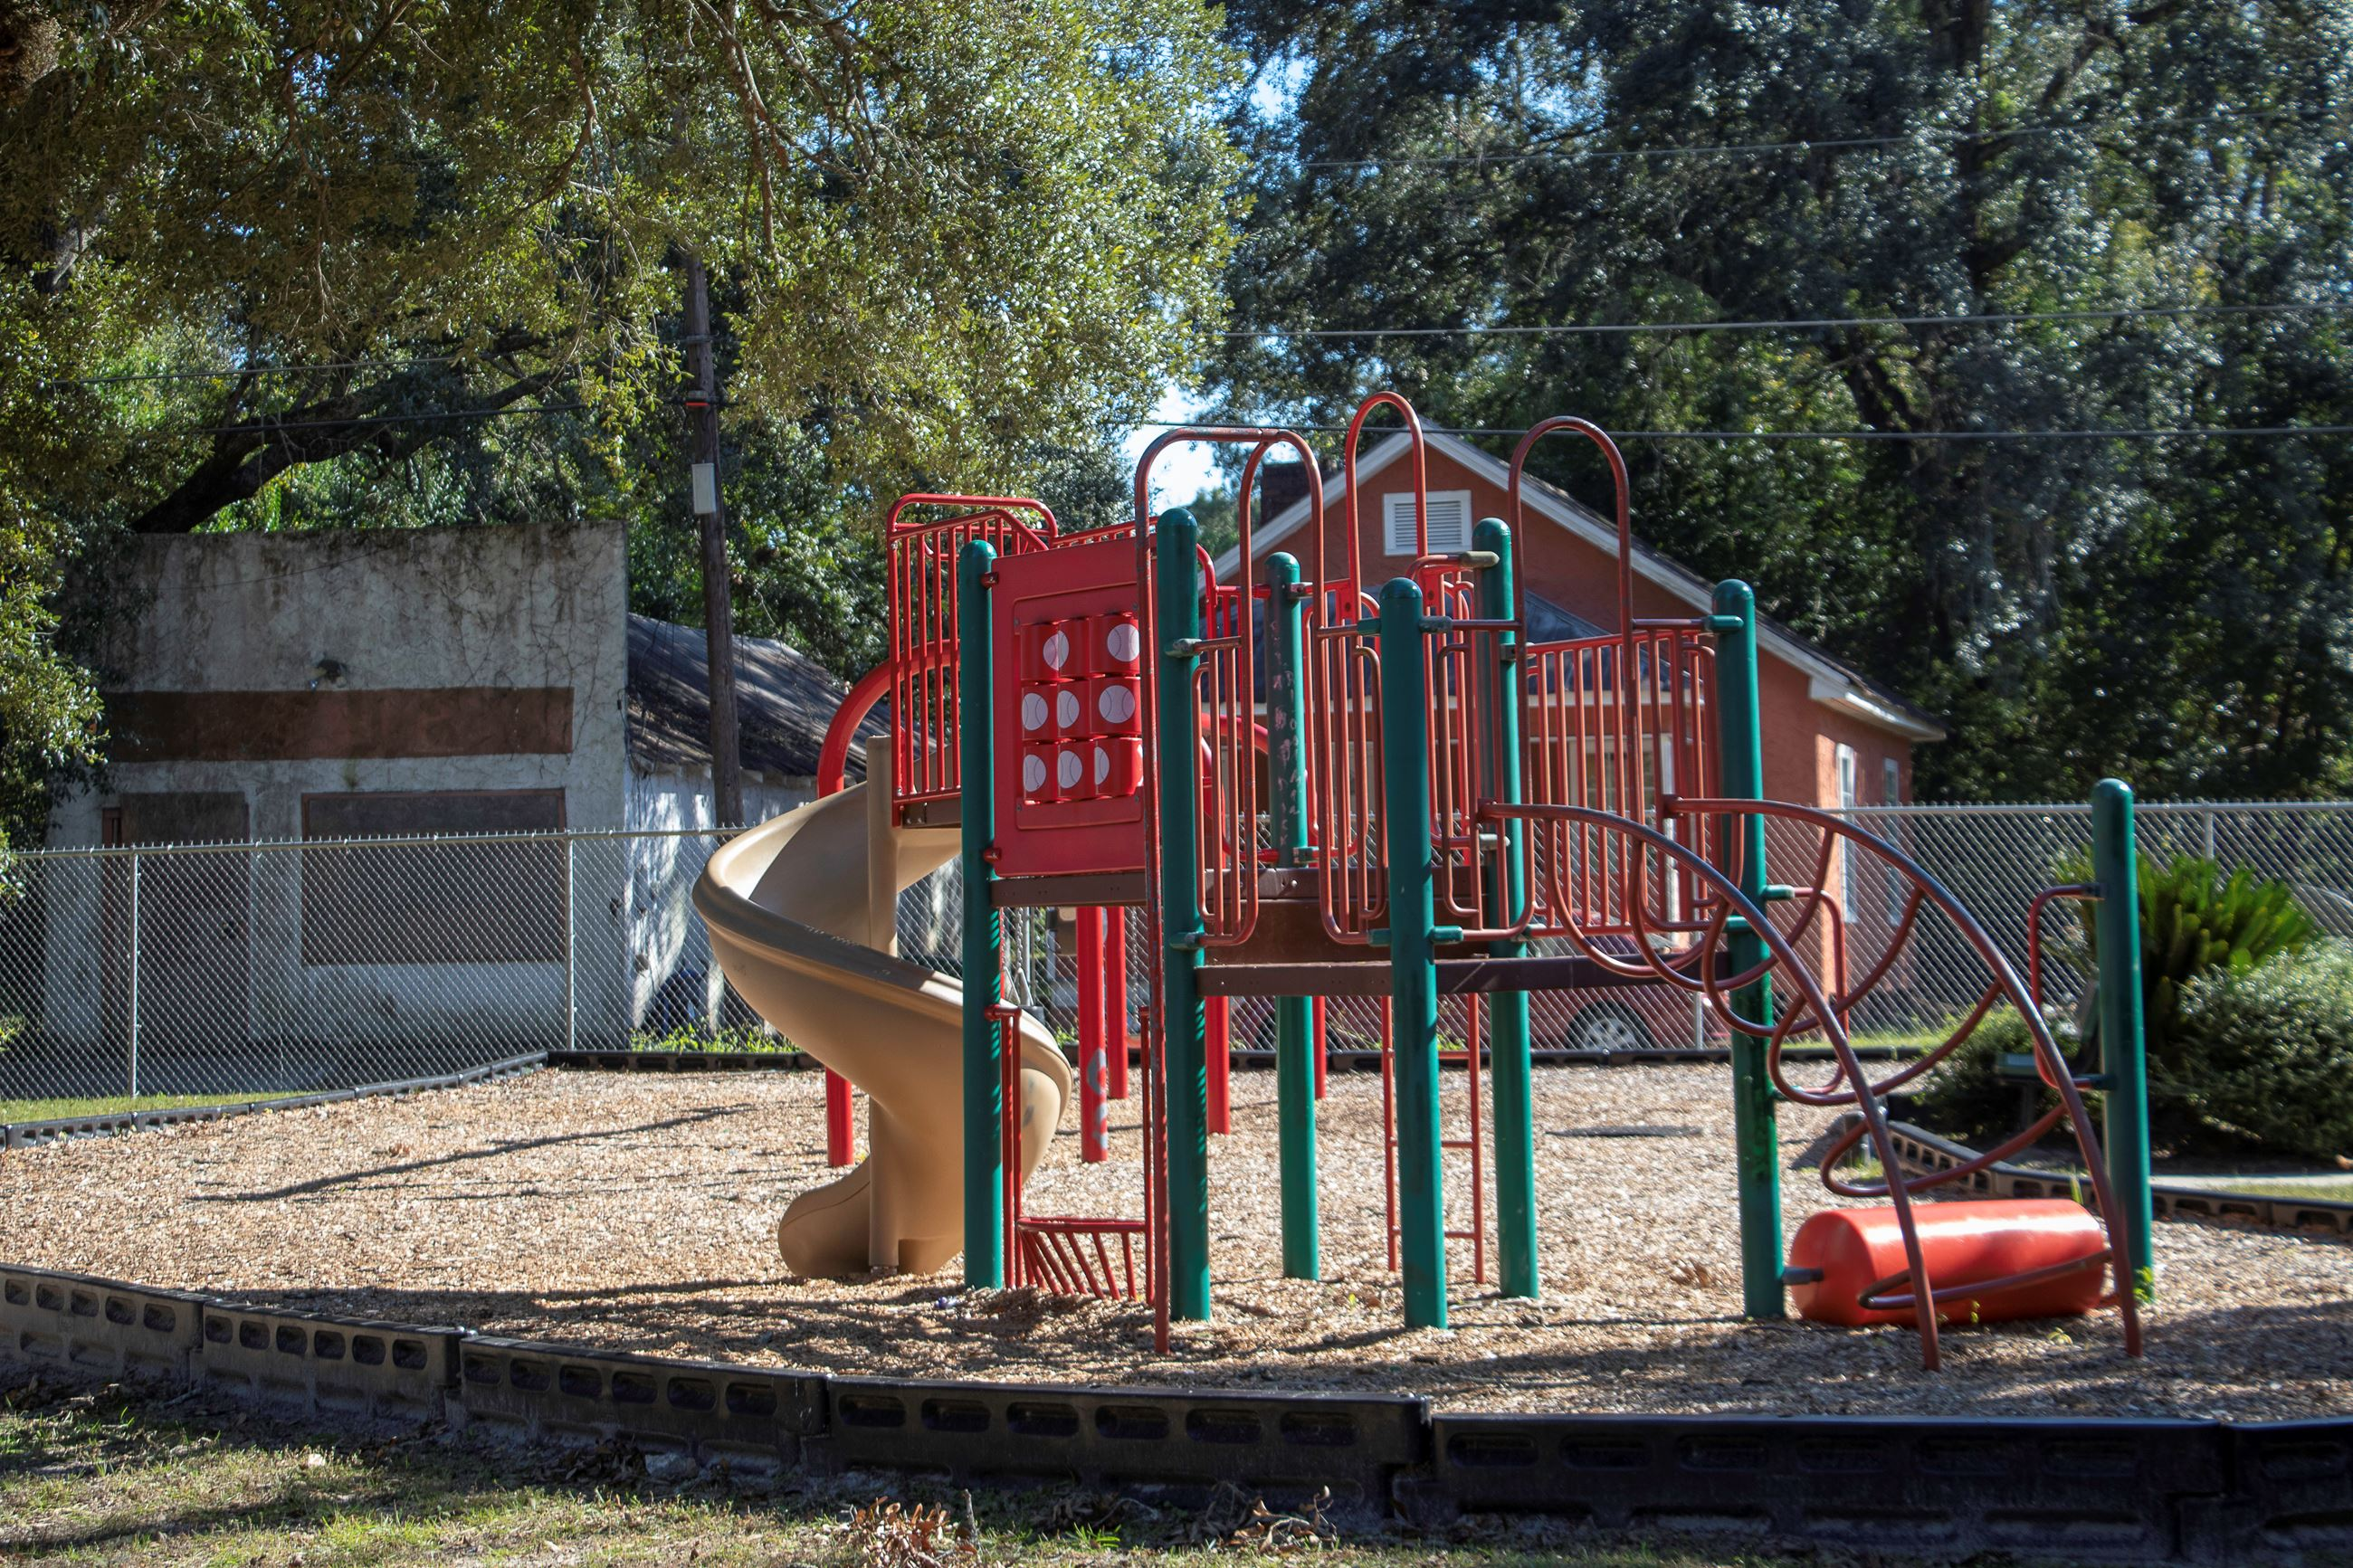 An image of a brightly colored playground in a park.